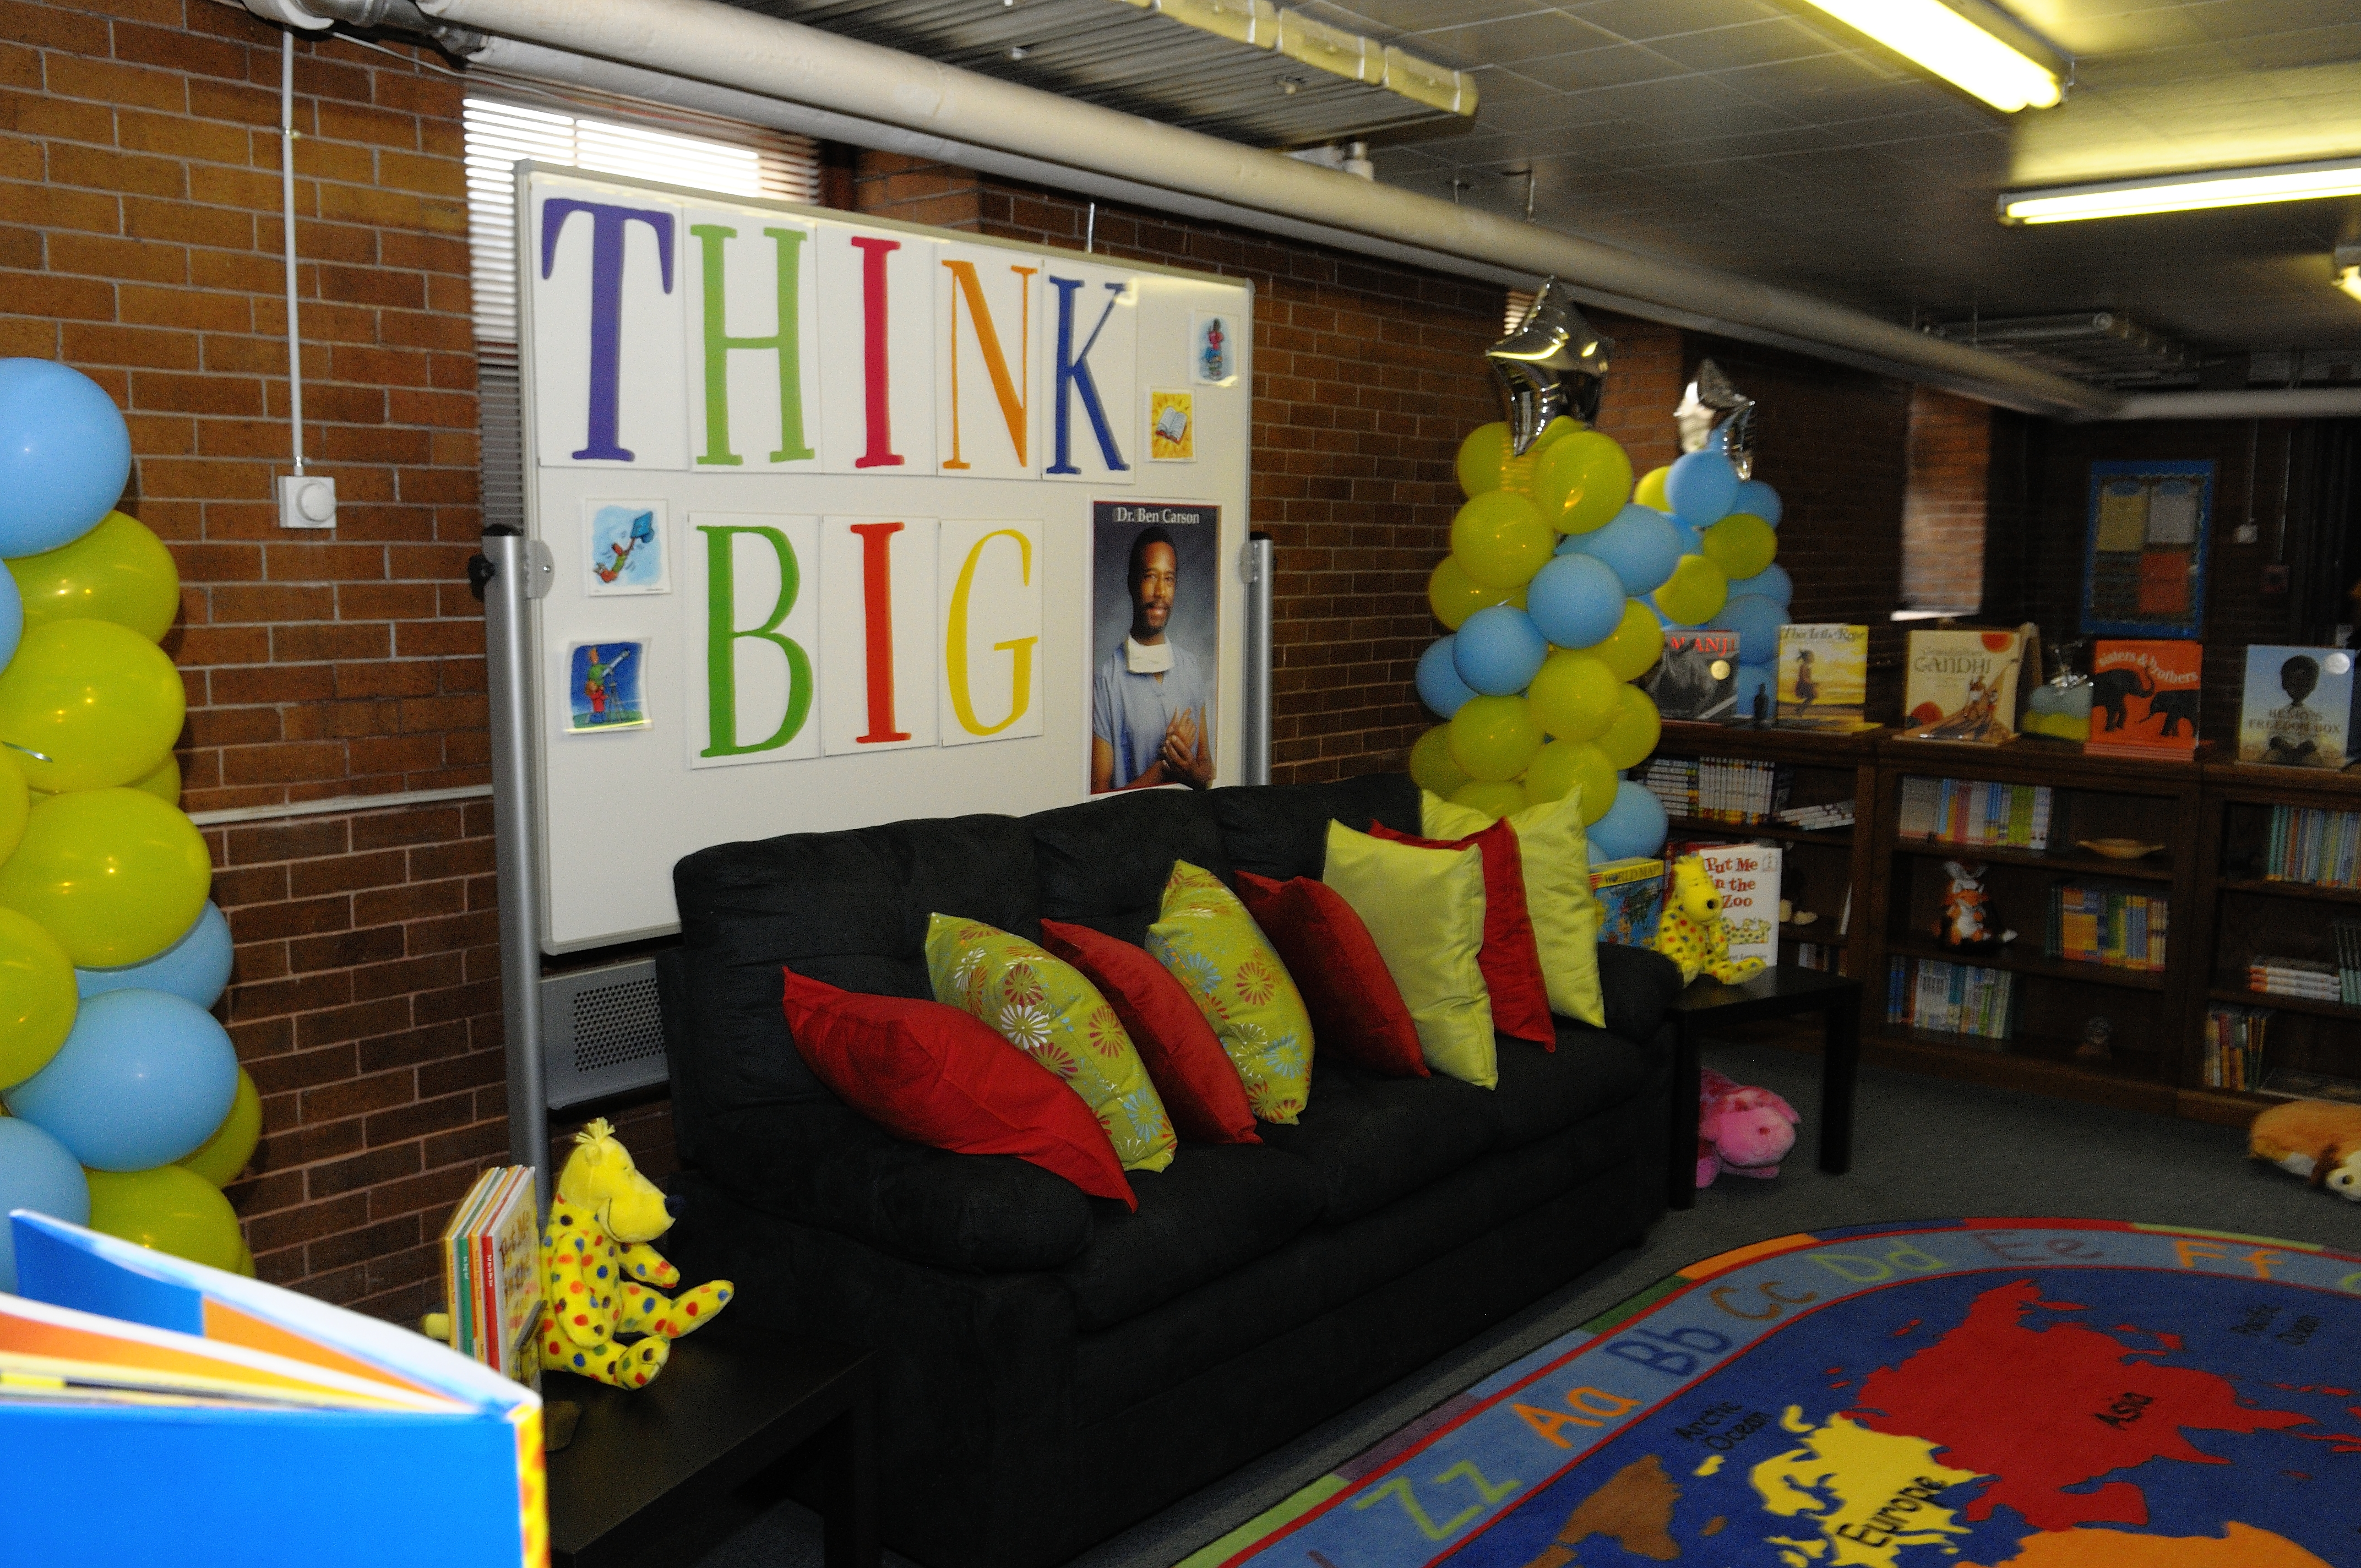 THINK BIG couch